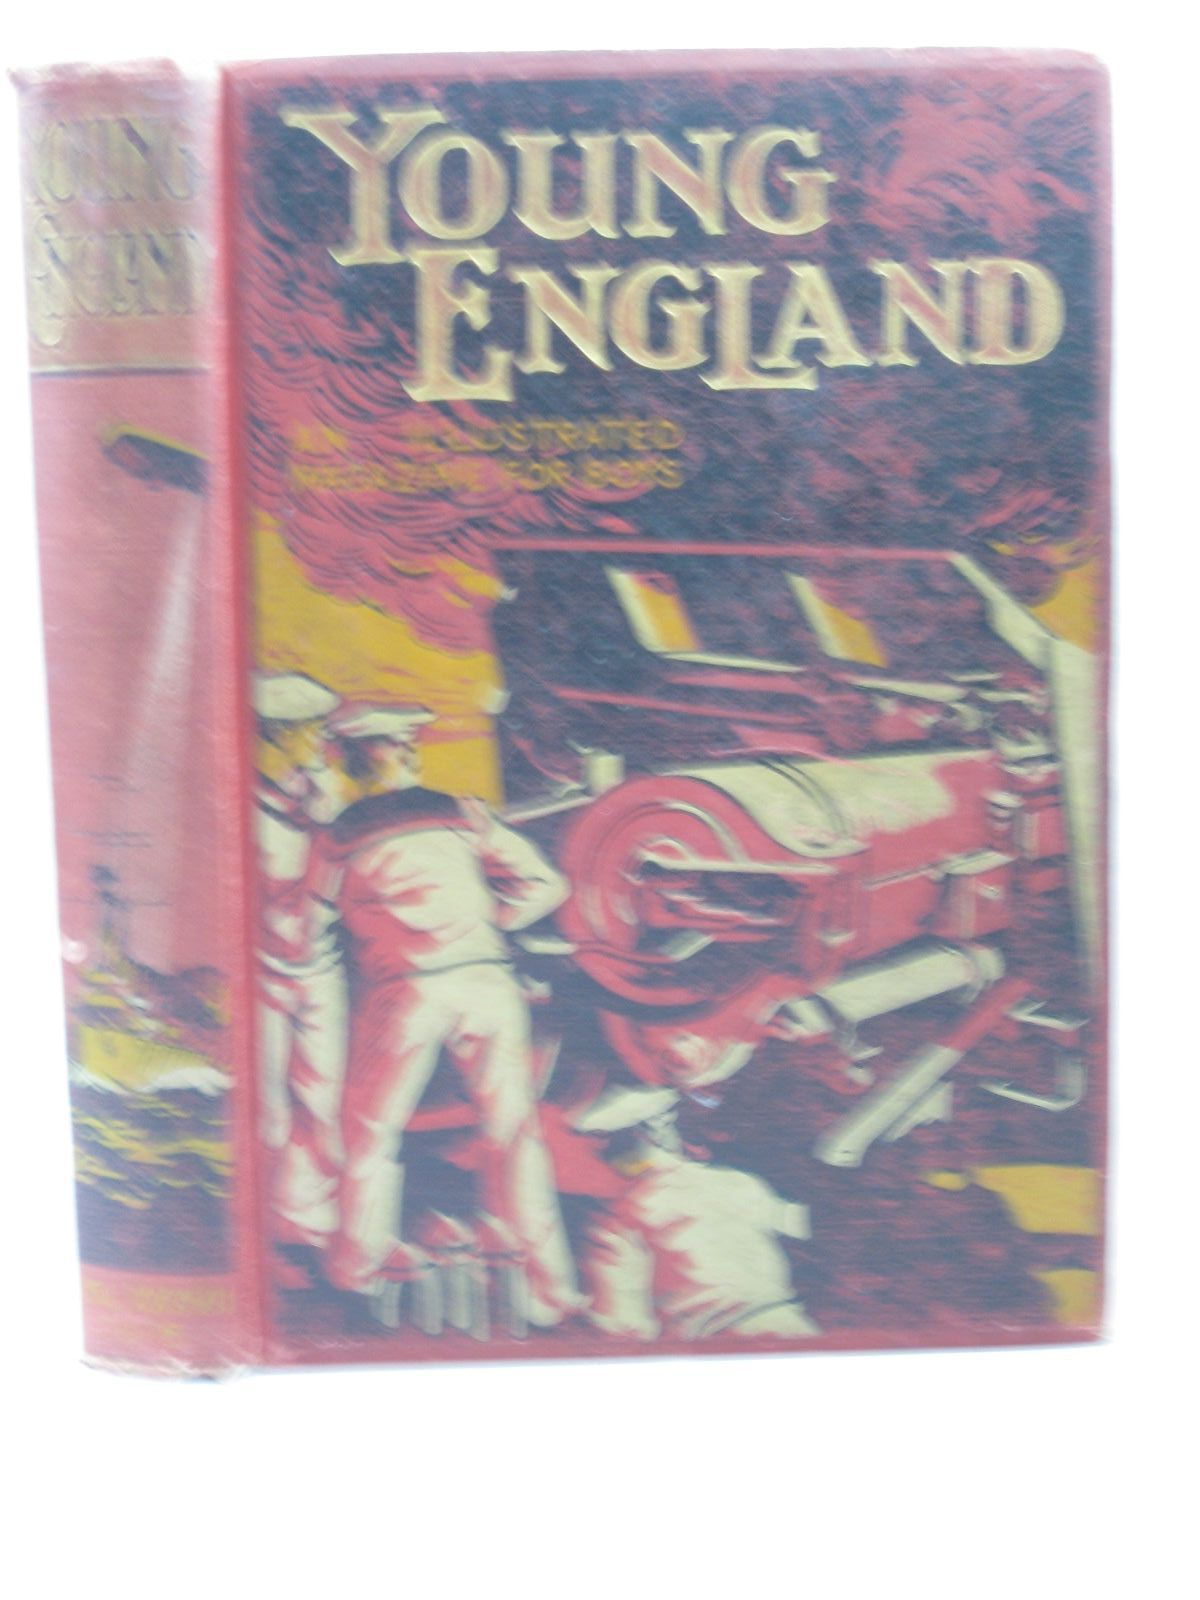 Photo of YOUNG ENGLAND (37th ANNUAL) written by Eady, K.M. Walker, Rowland et al, illustrated by Campbell, John F. Osborne, Rex et al., published by Pilgrim Press (STOCK CODE: 1402751)  for sale by Stella & Rose's Books